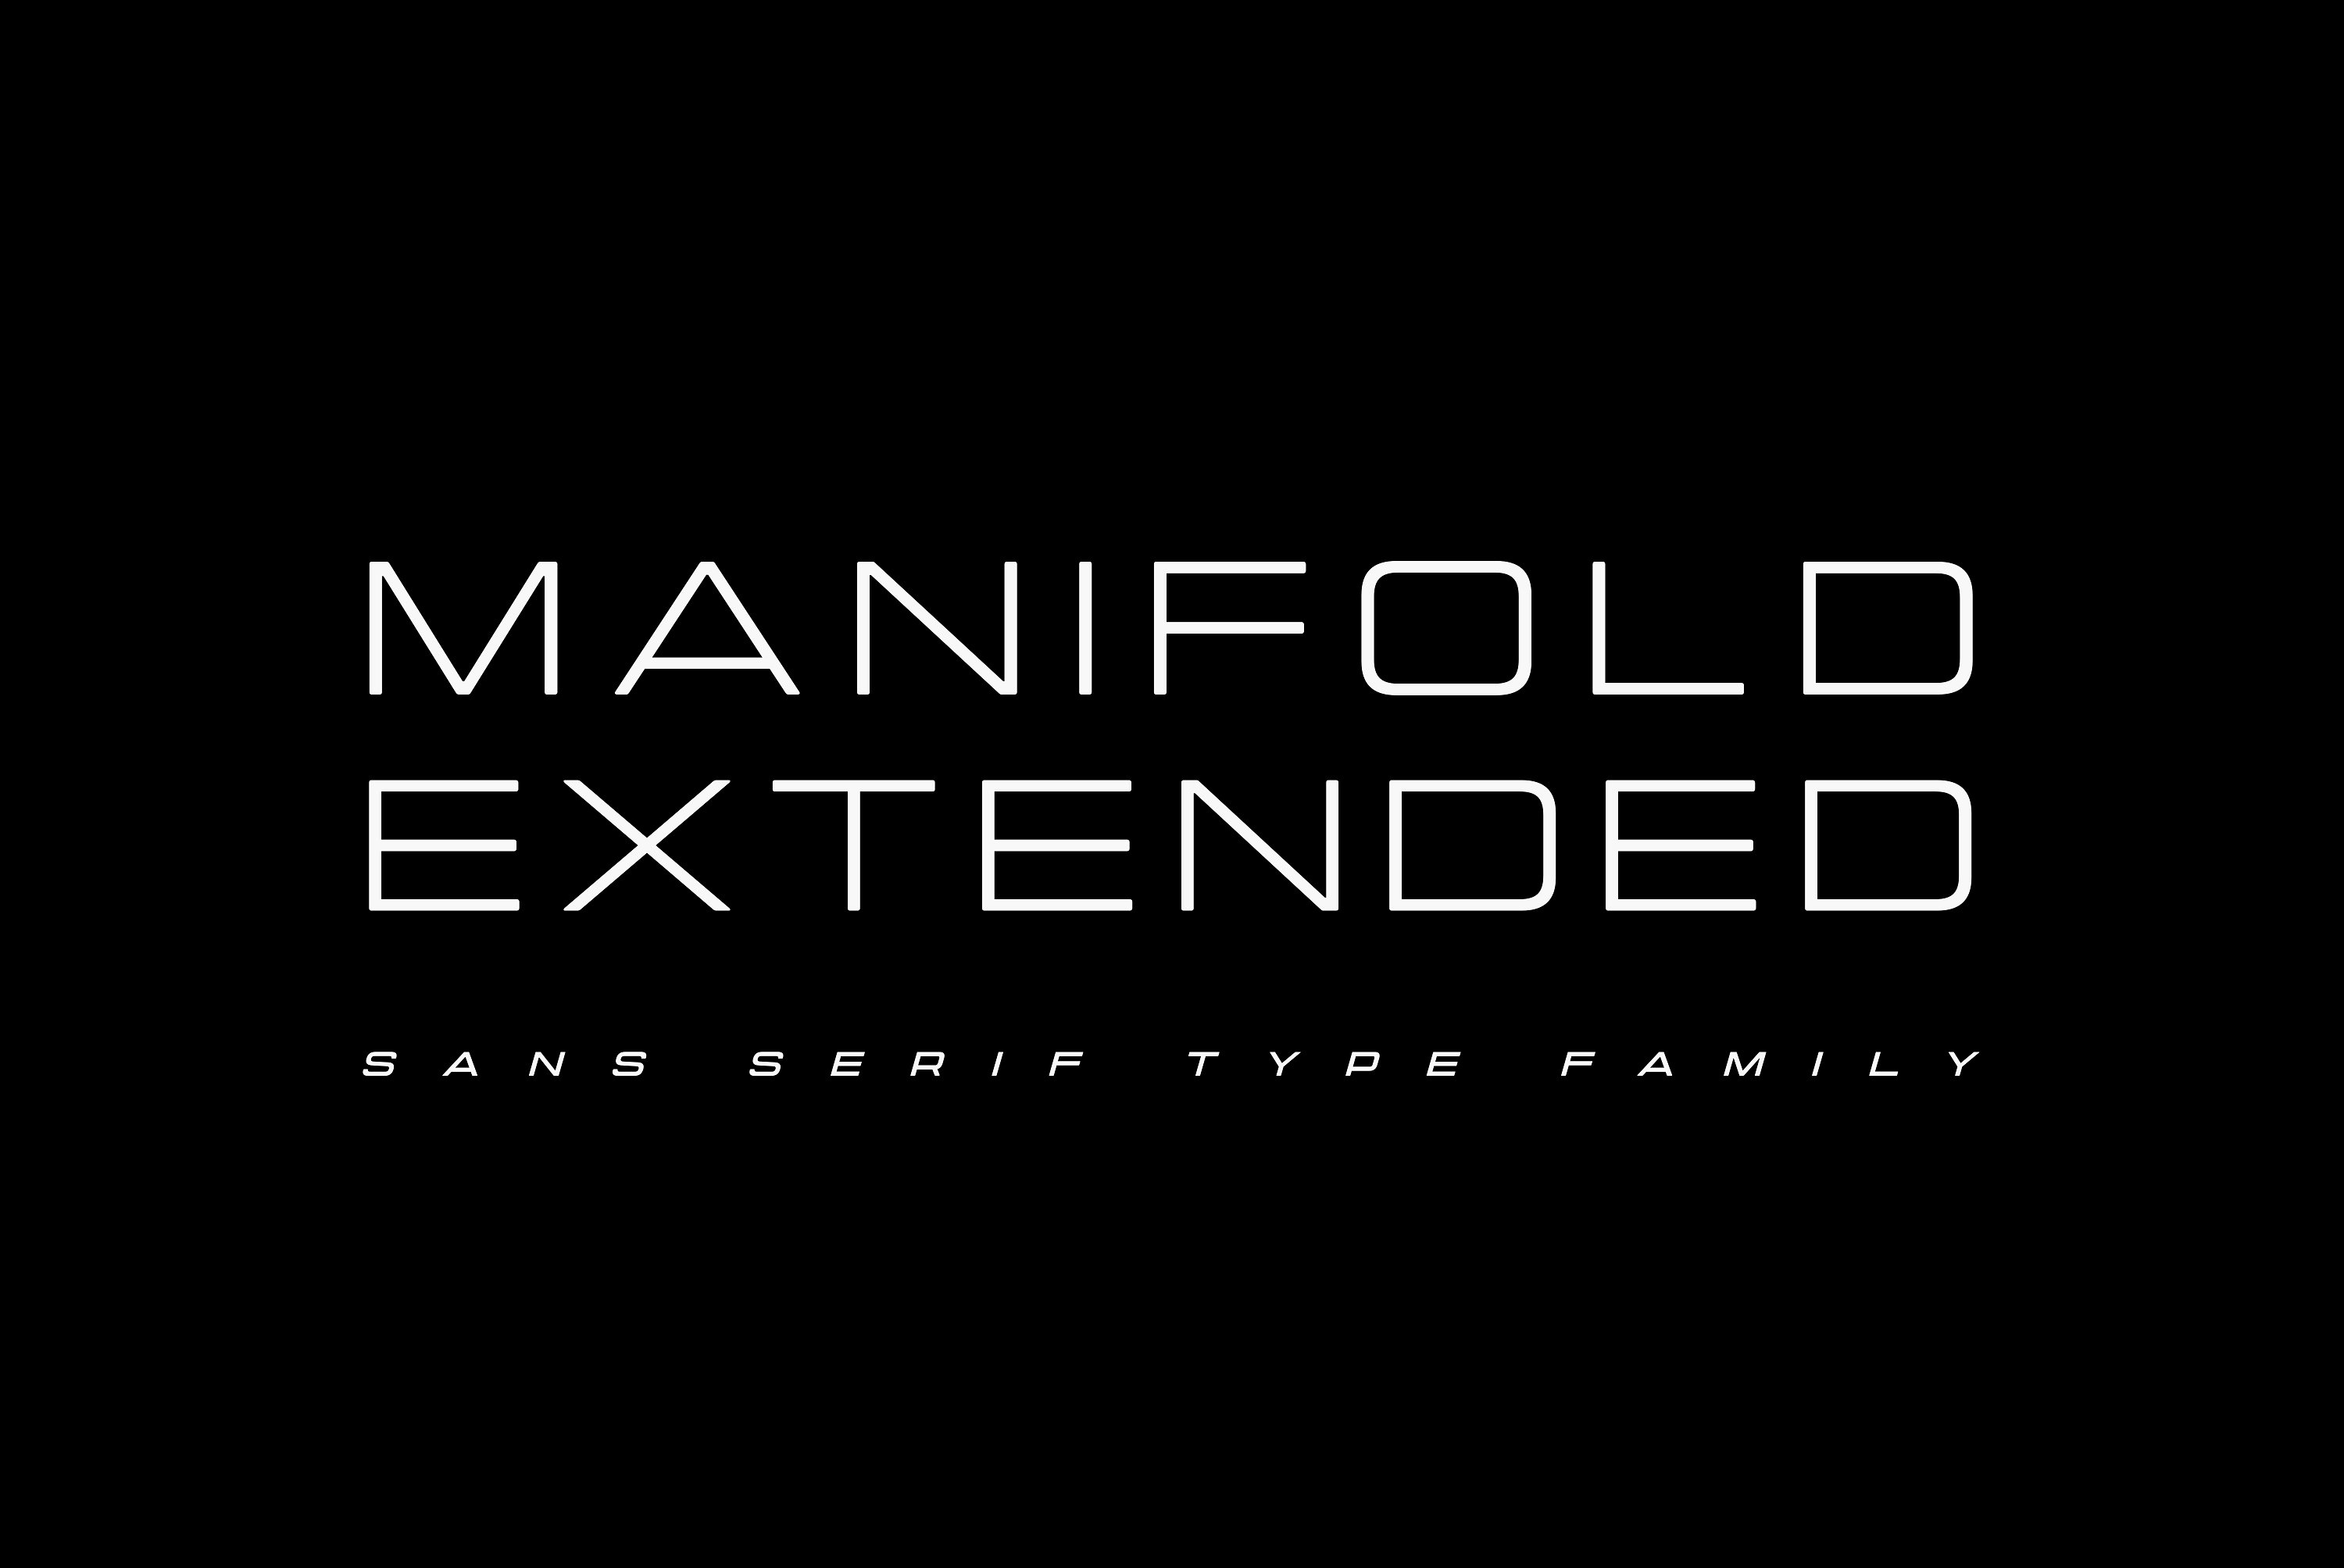 Manifold Extended